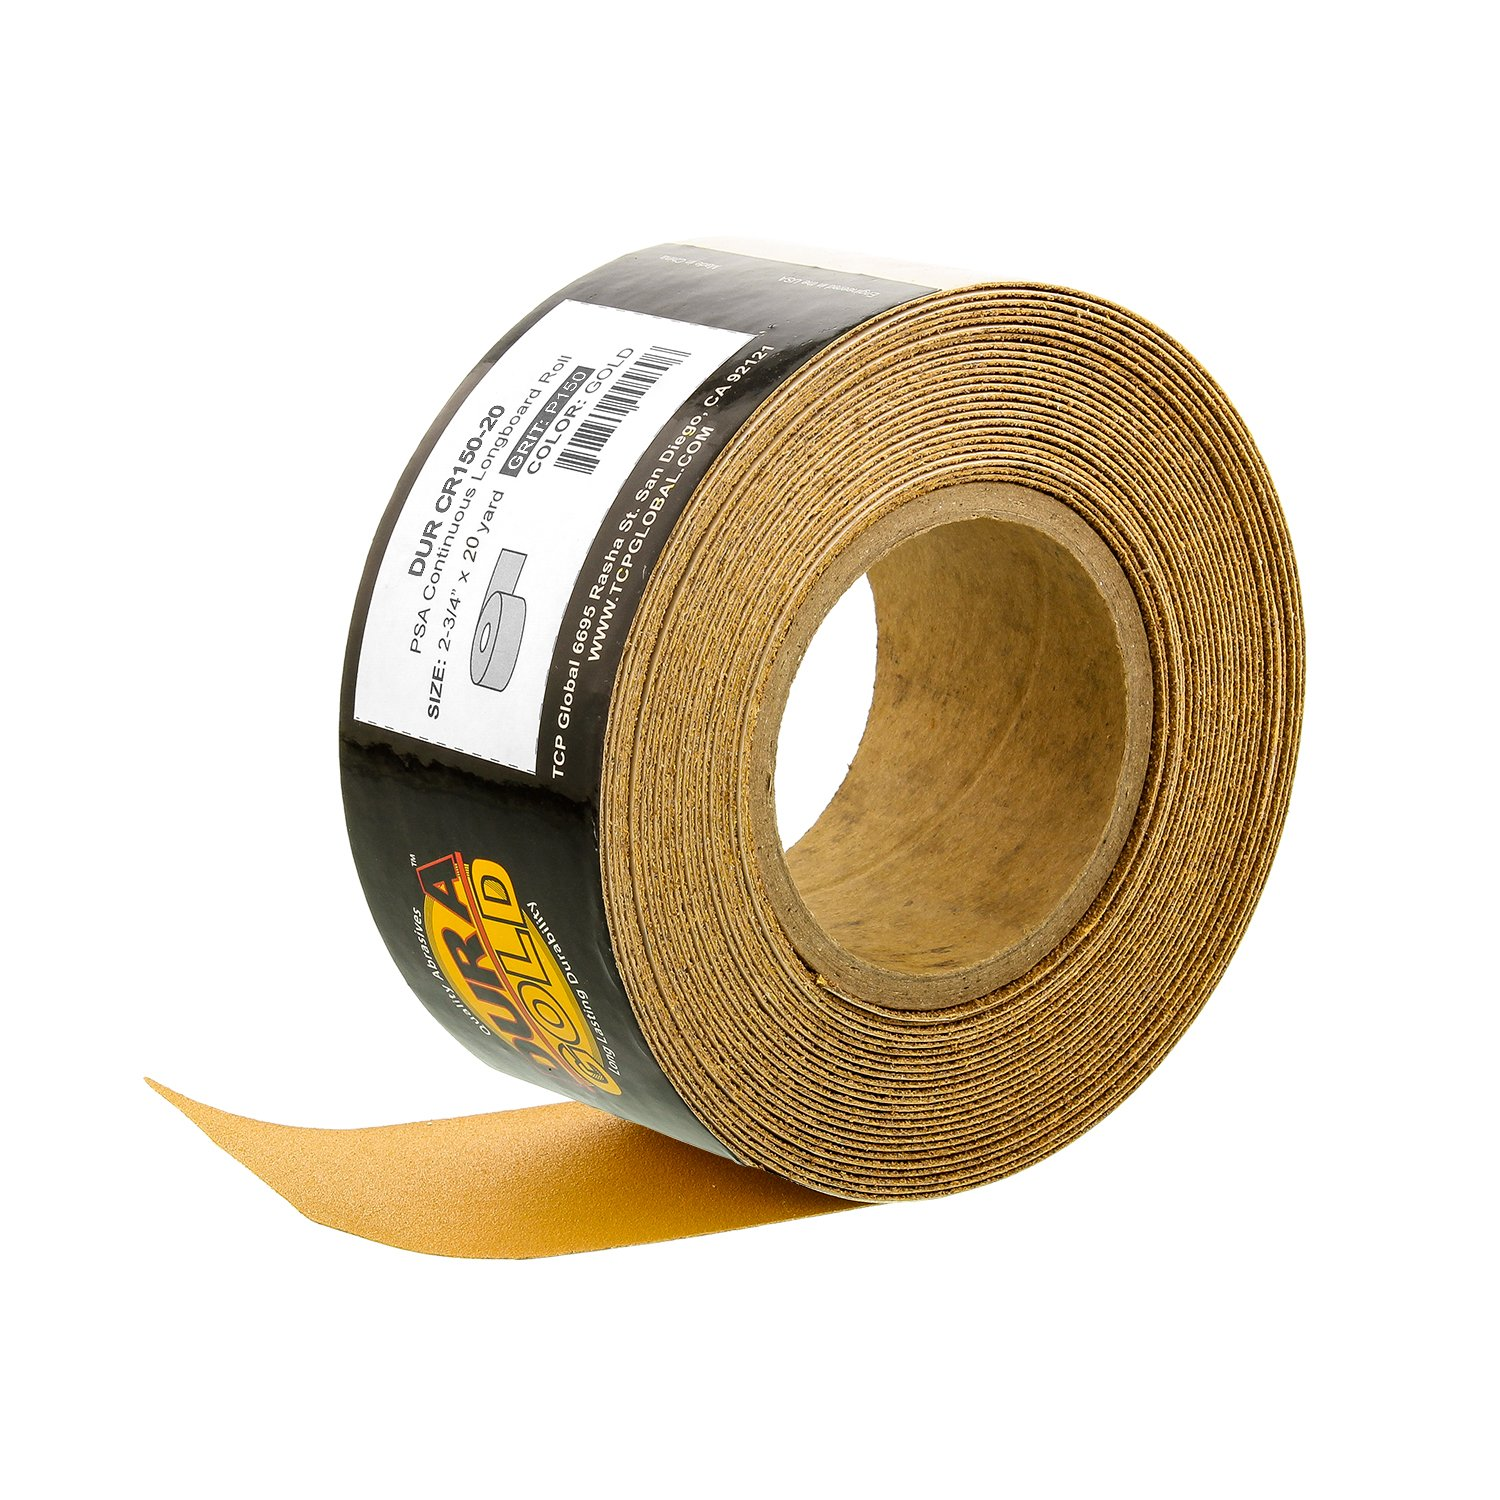 Dura-Gold - Premium - 150 Grit Gold - Longboard Continuous Roll 20 Yards Long by 2-3/4'' Wide PSA Self Adhesive Stickyback Longboard Sandpaper for Automotive and Woodworking